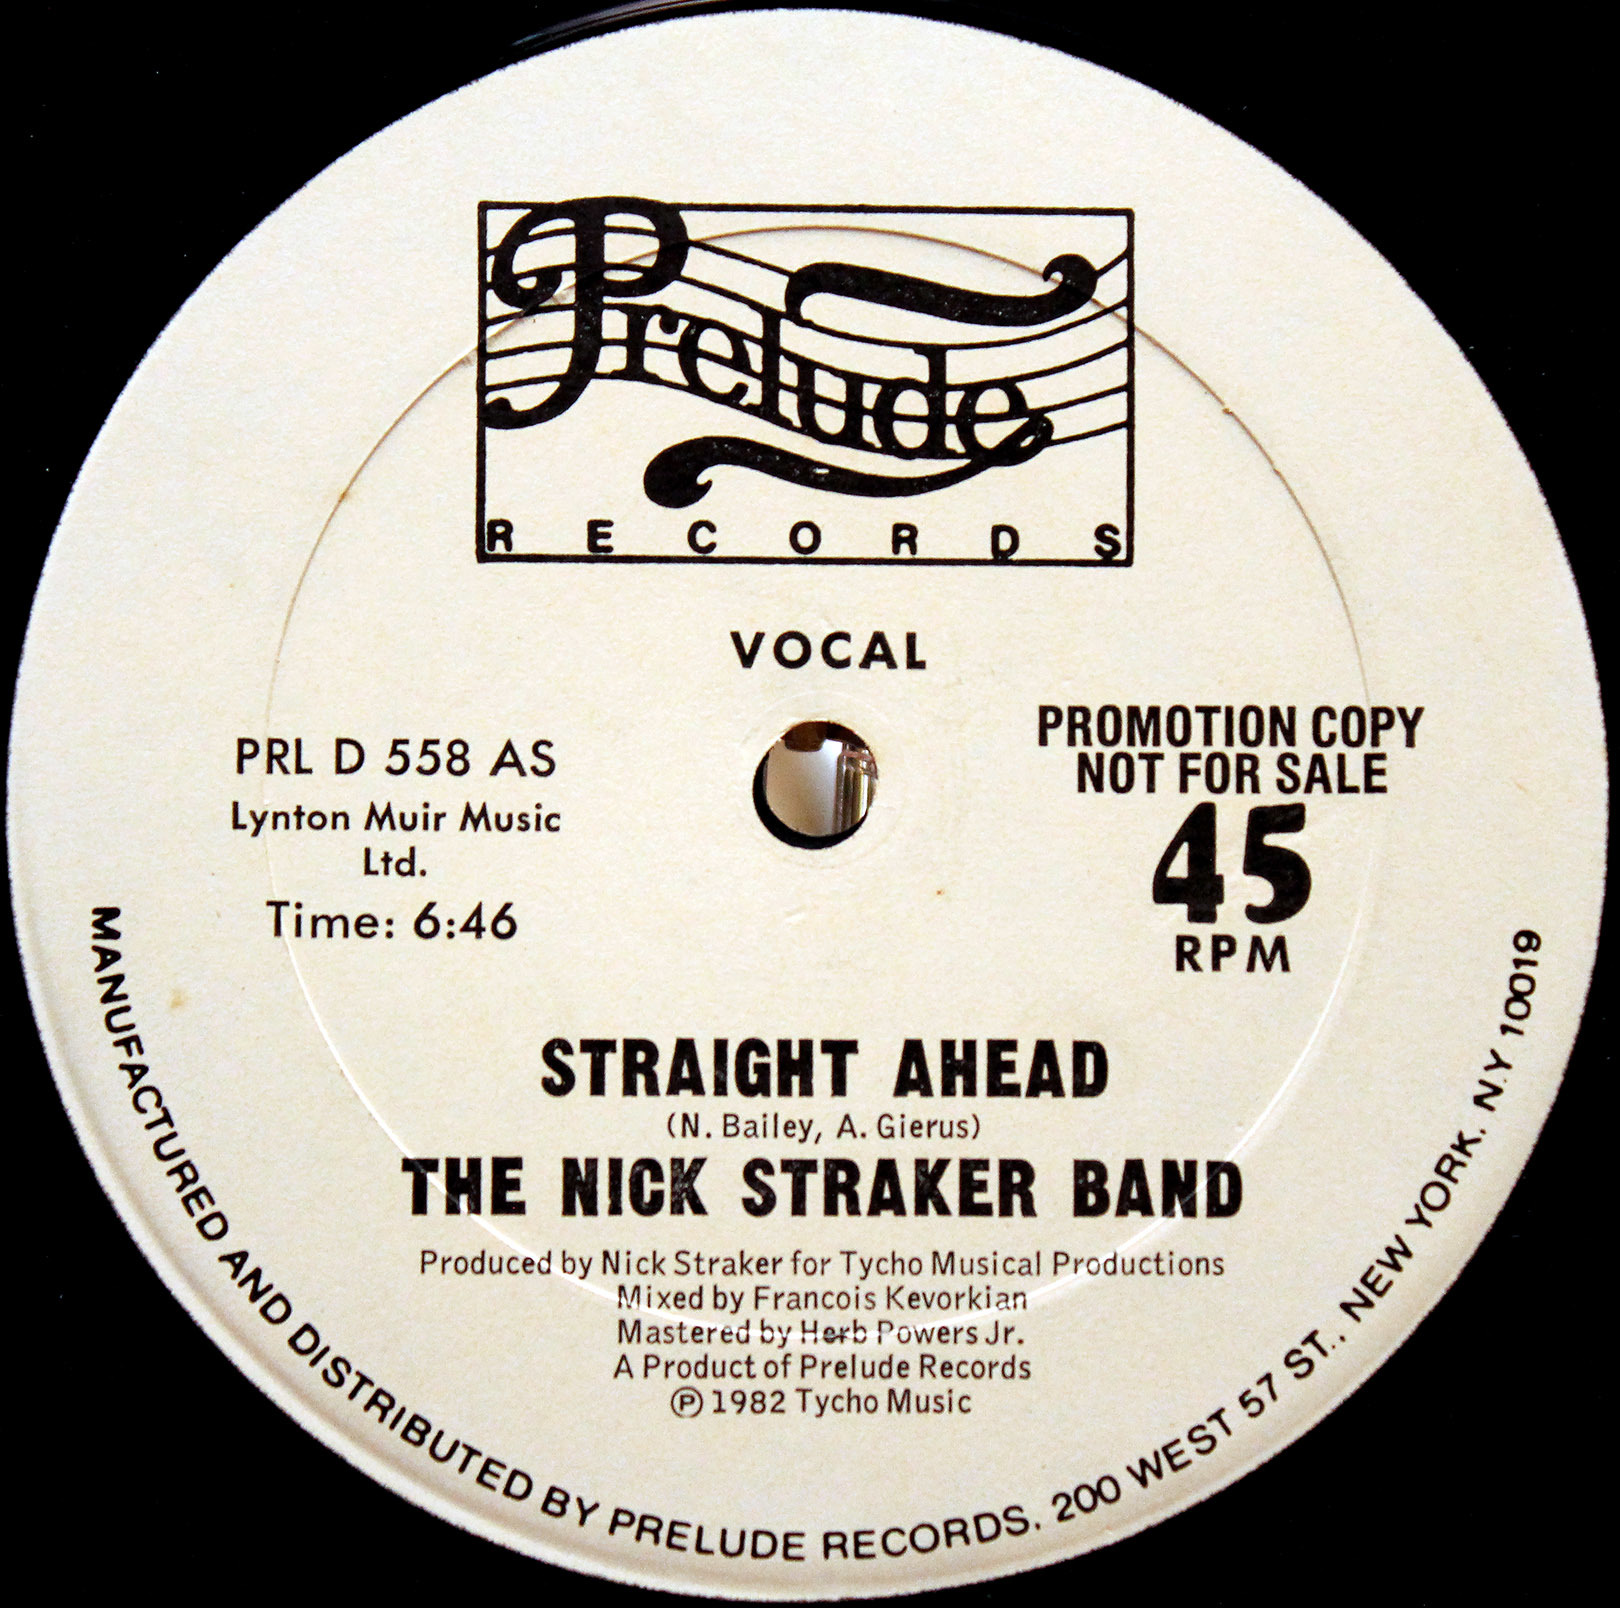 Nick Straker Band - Straight Ahead 02